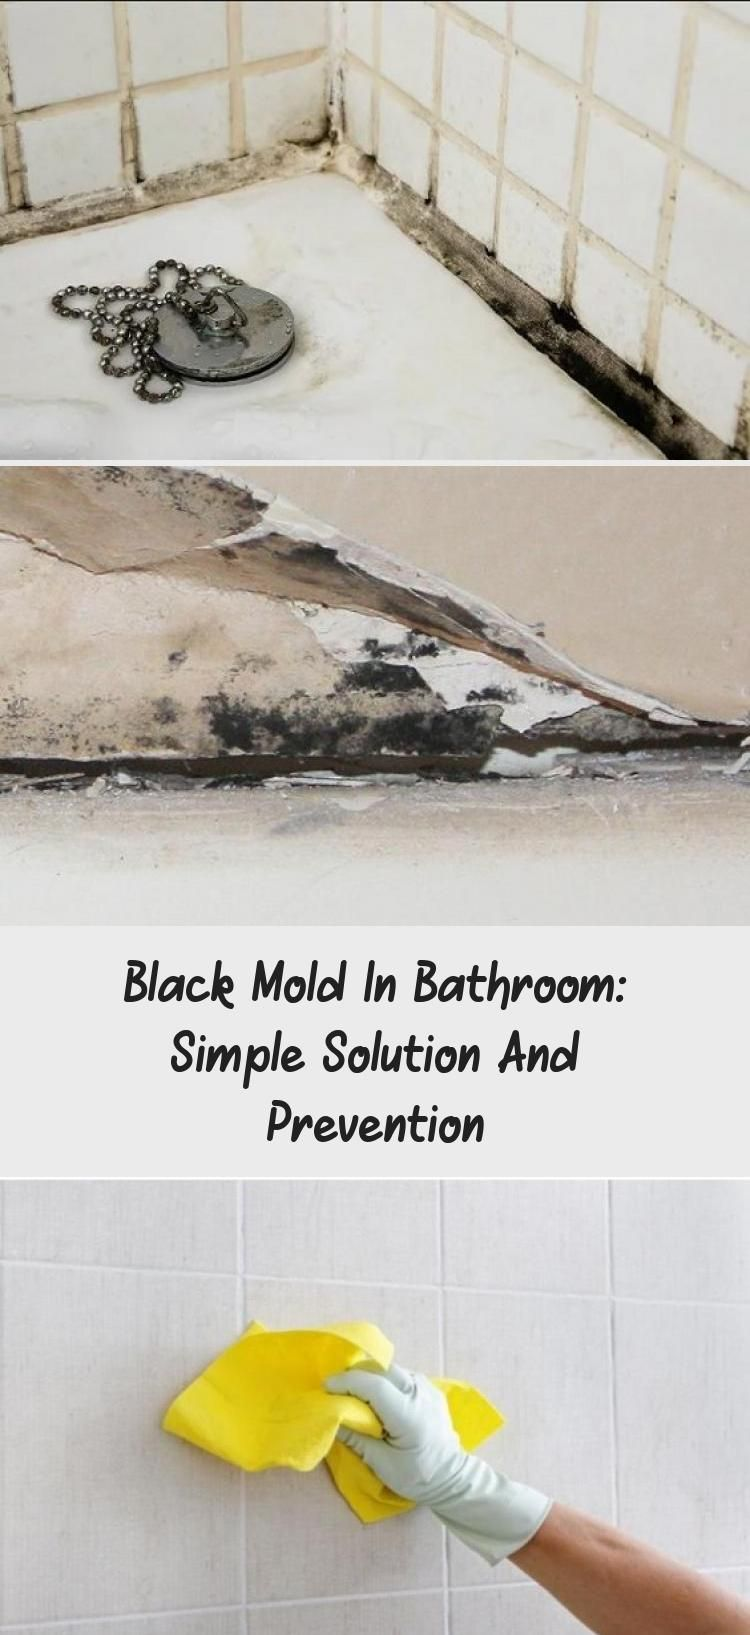 Black Mold In Bathroom Simple Solution And Prevention